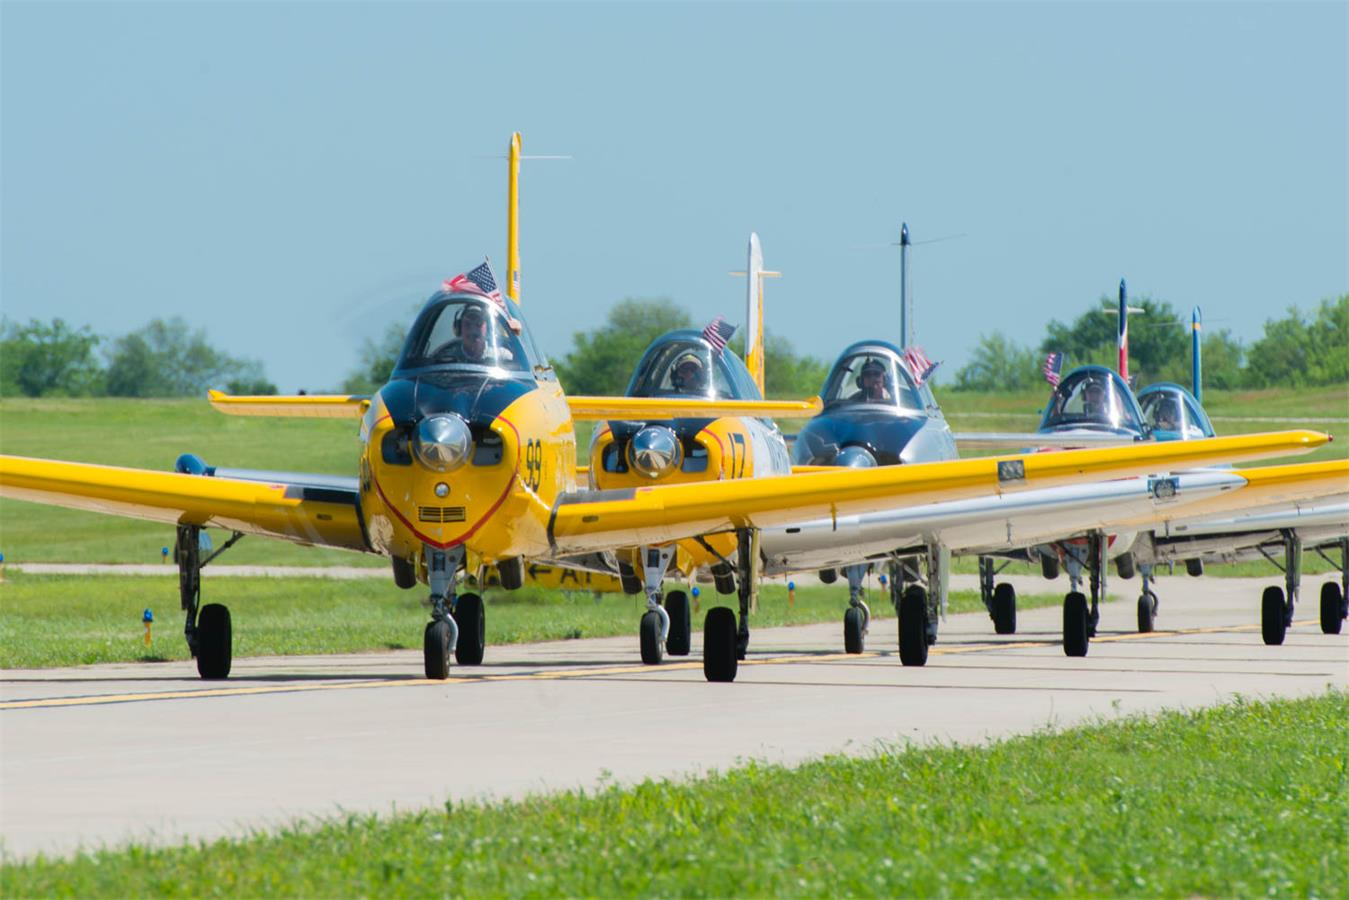 Falcon Flight lining up for take off. (photo via Take to the Skies AirFest)